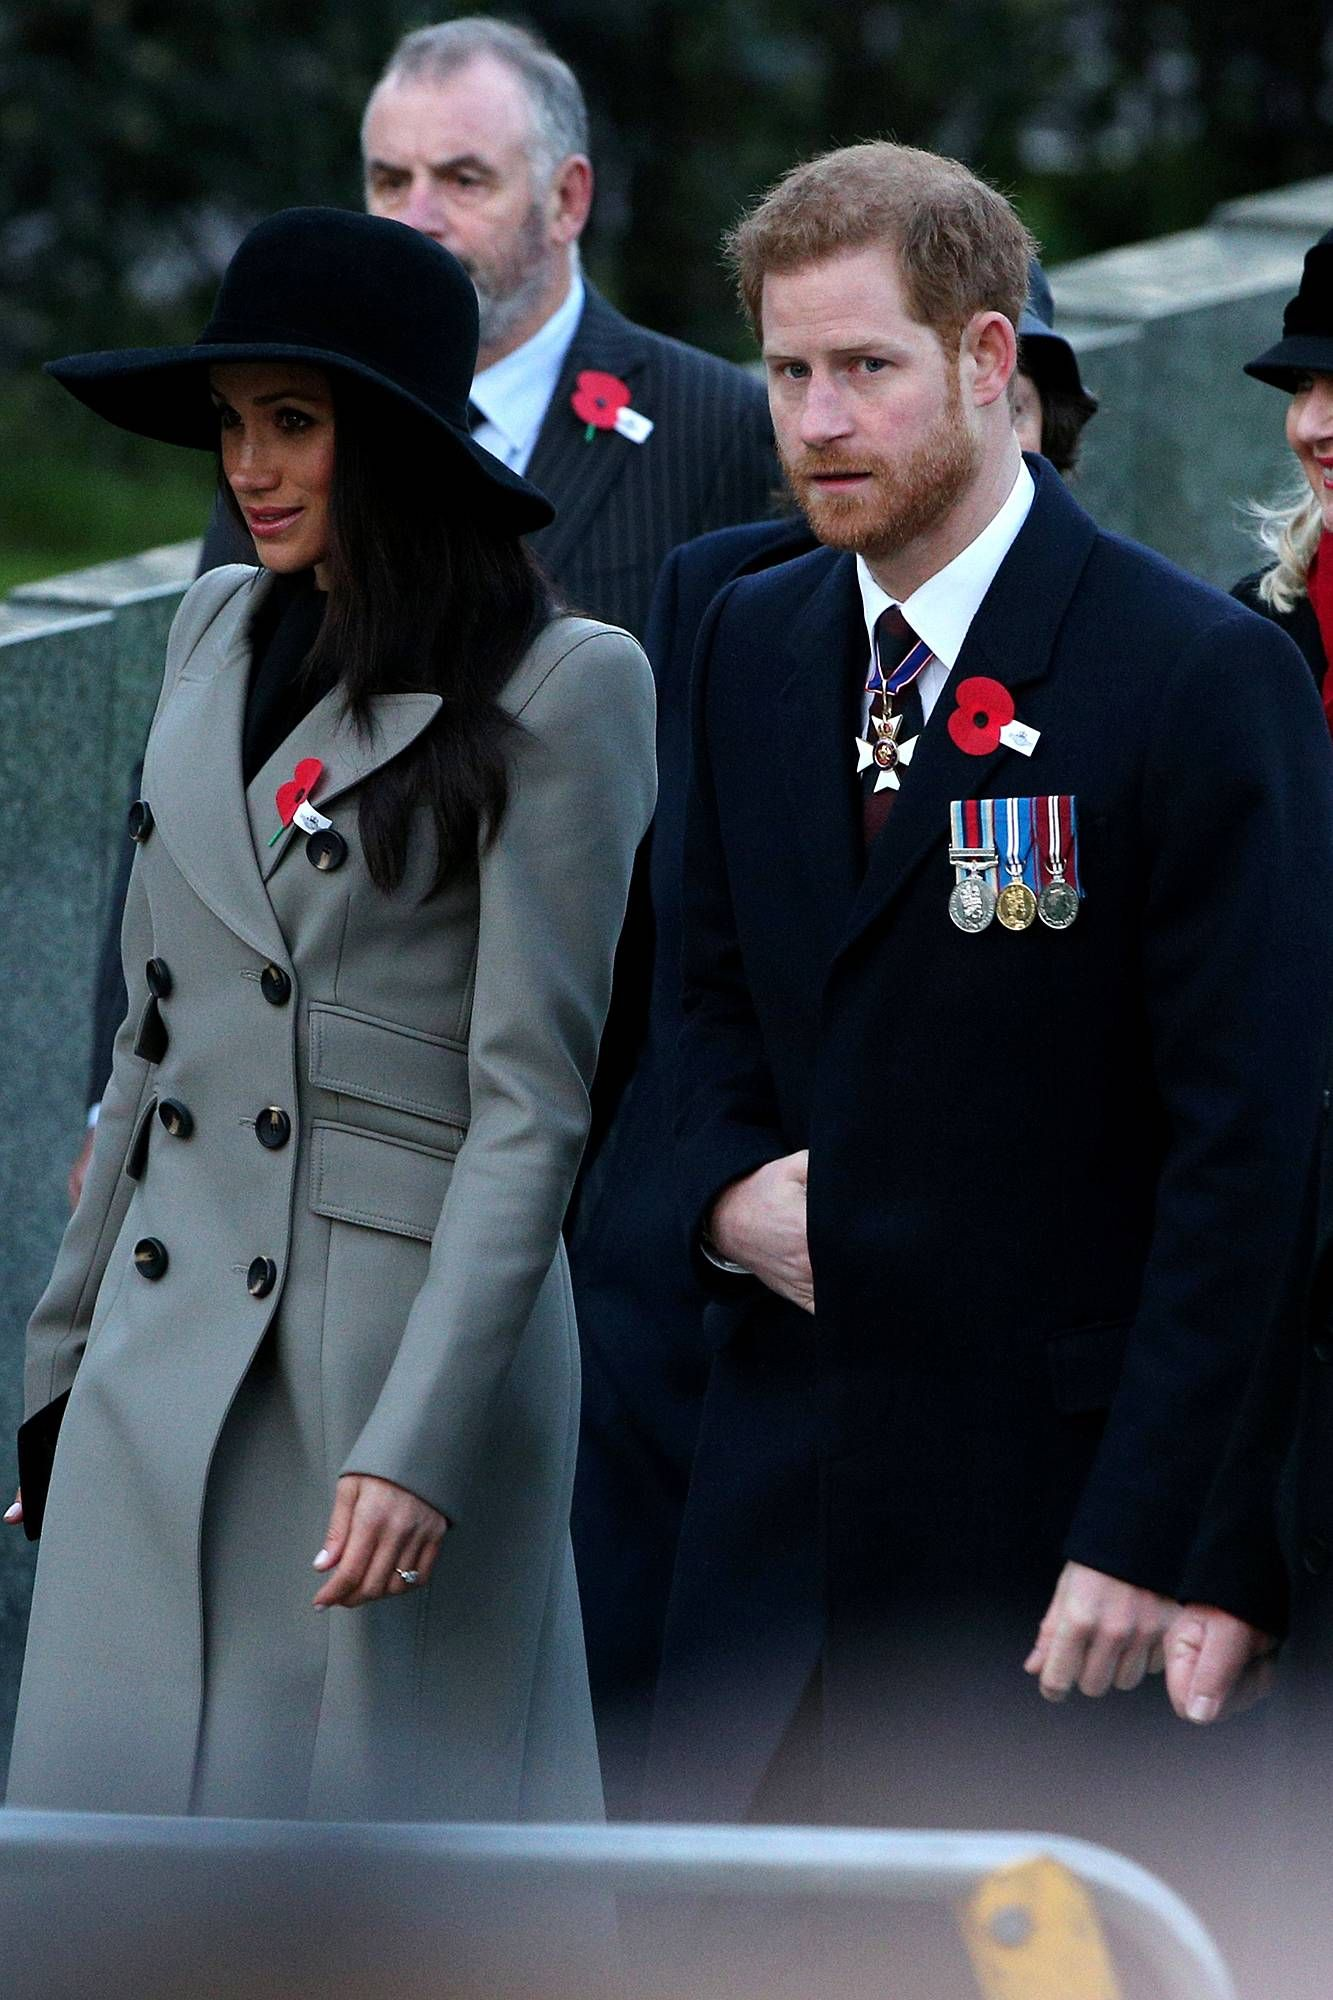 Somber Morning for Prince Harry and Meghan Markle as They